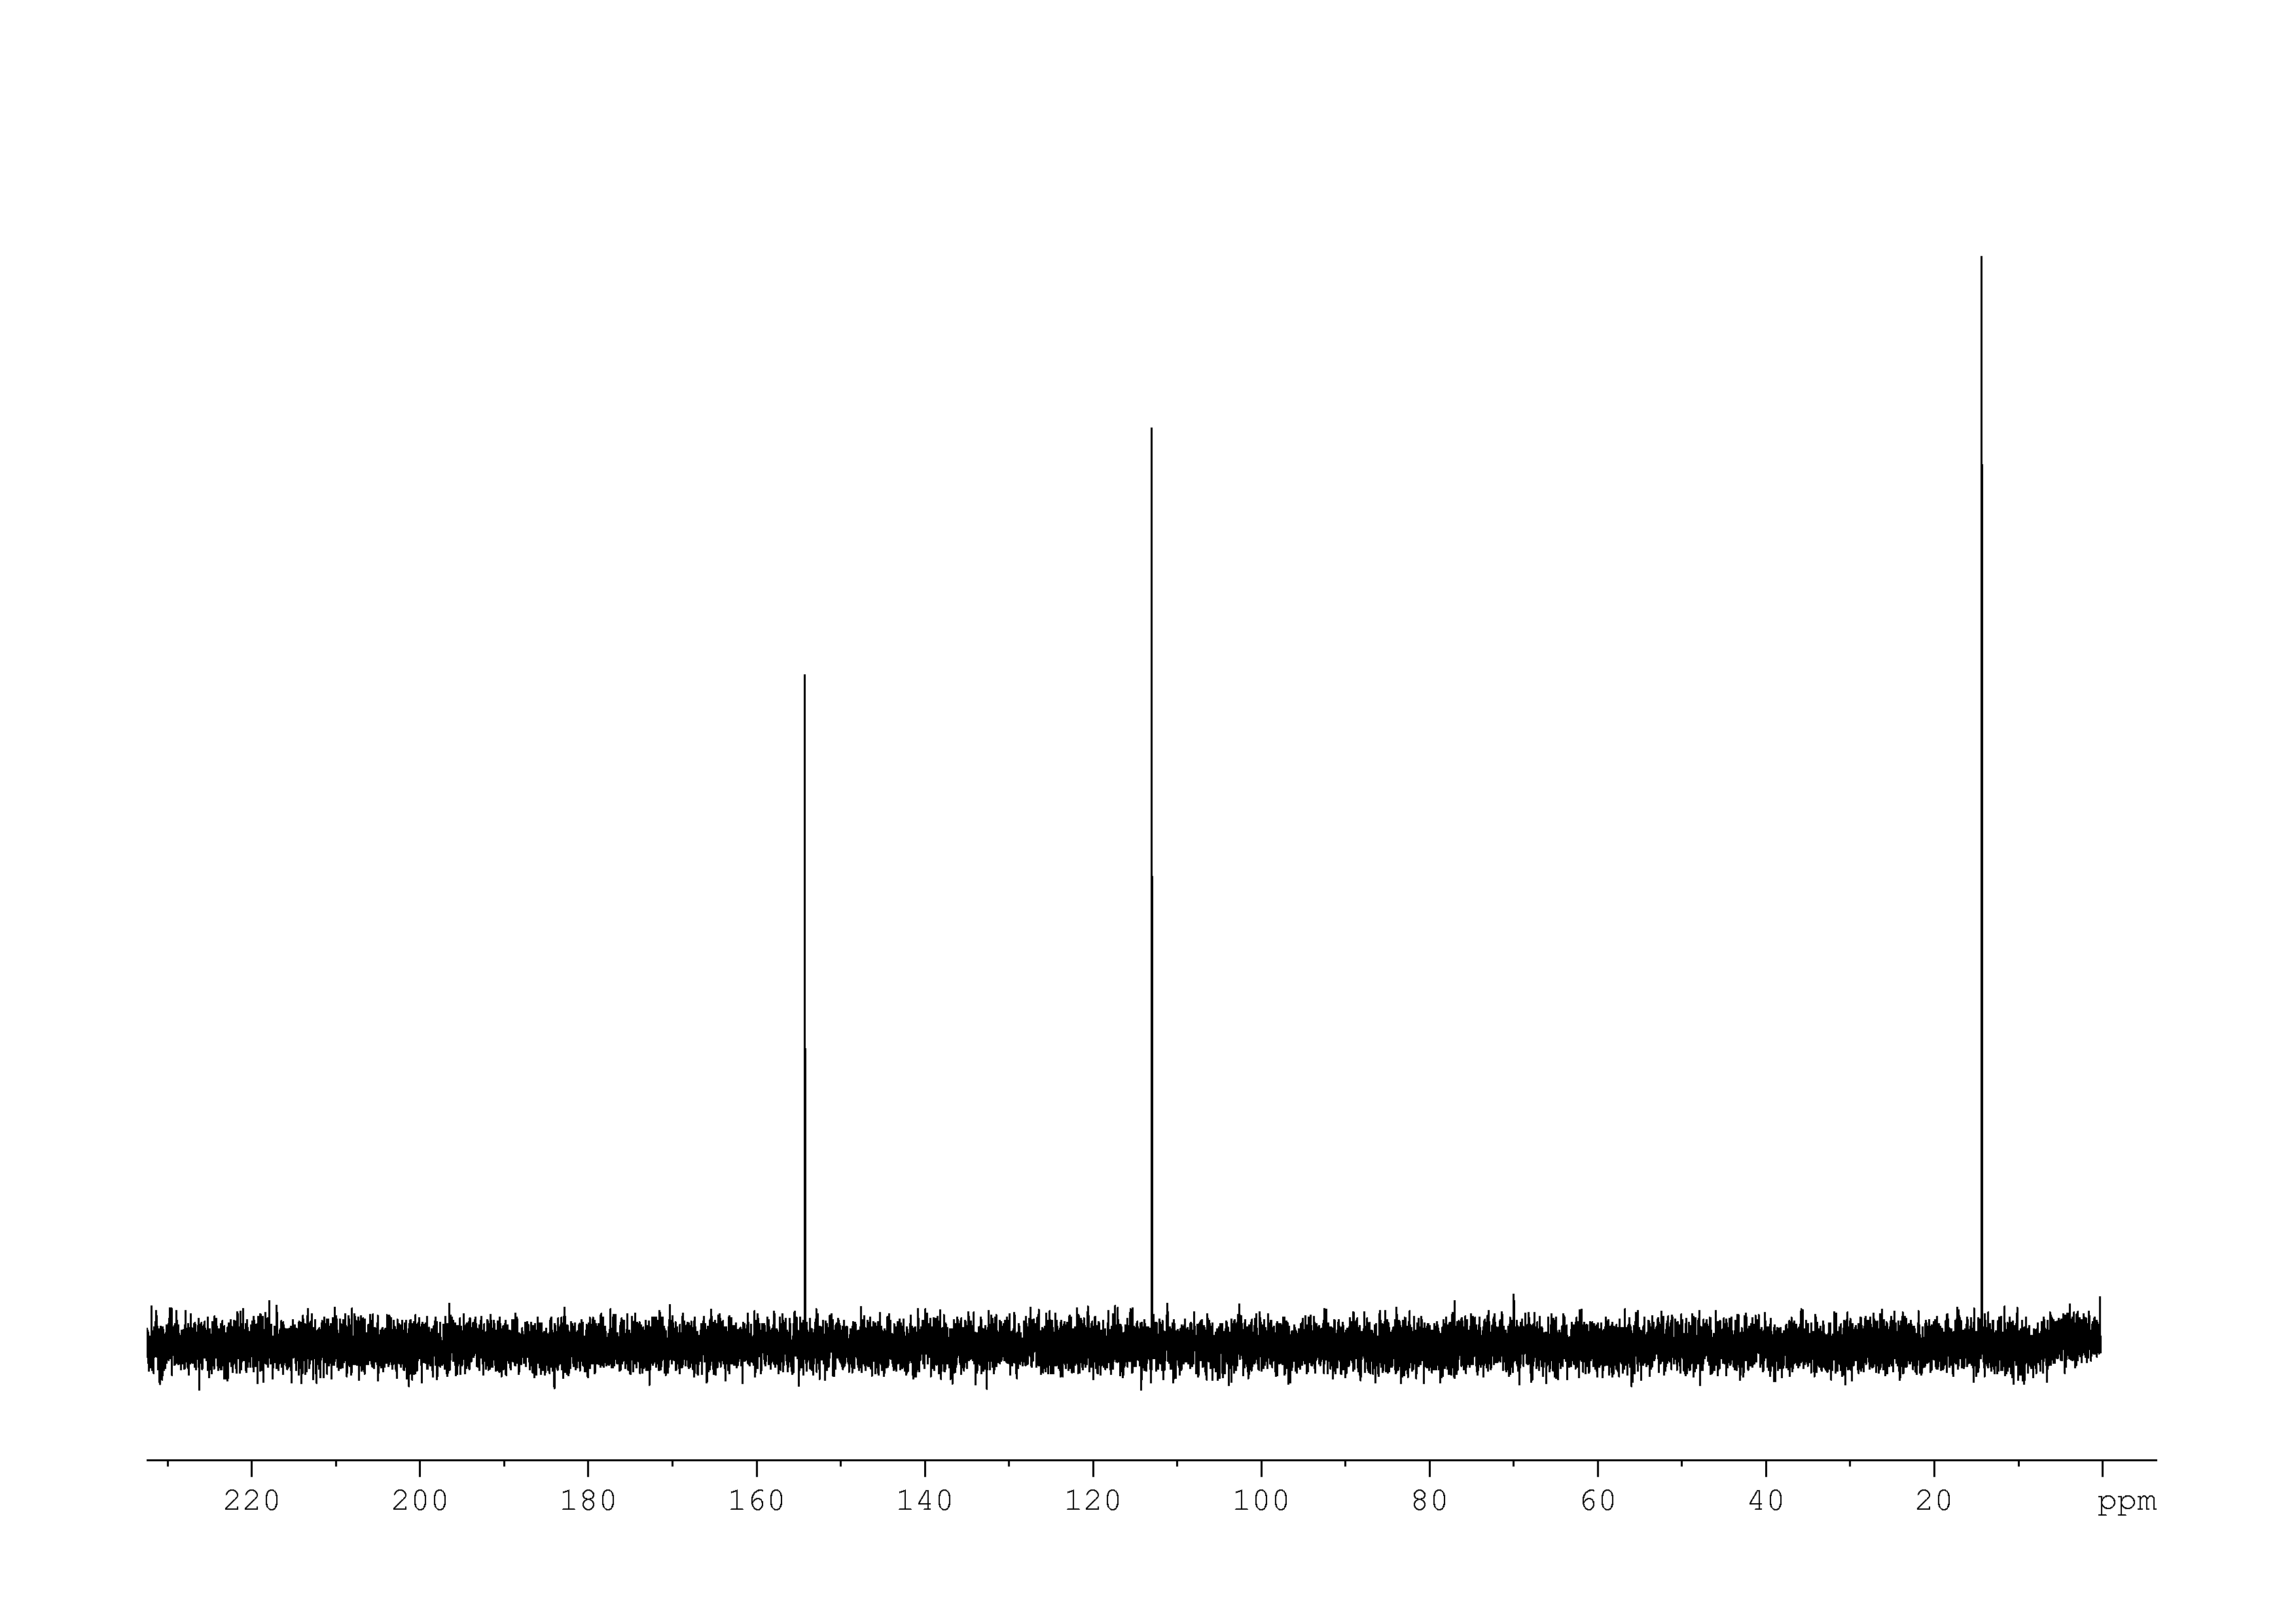 1D DEPT135, n/a spectrum for 3-hydroxy-2-methyl-4-pyrone